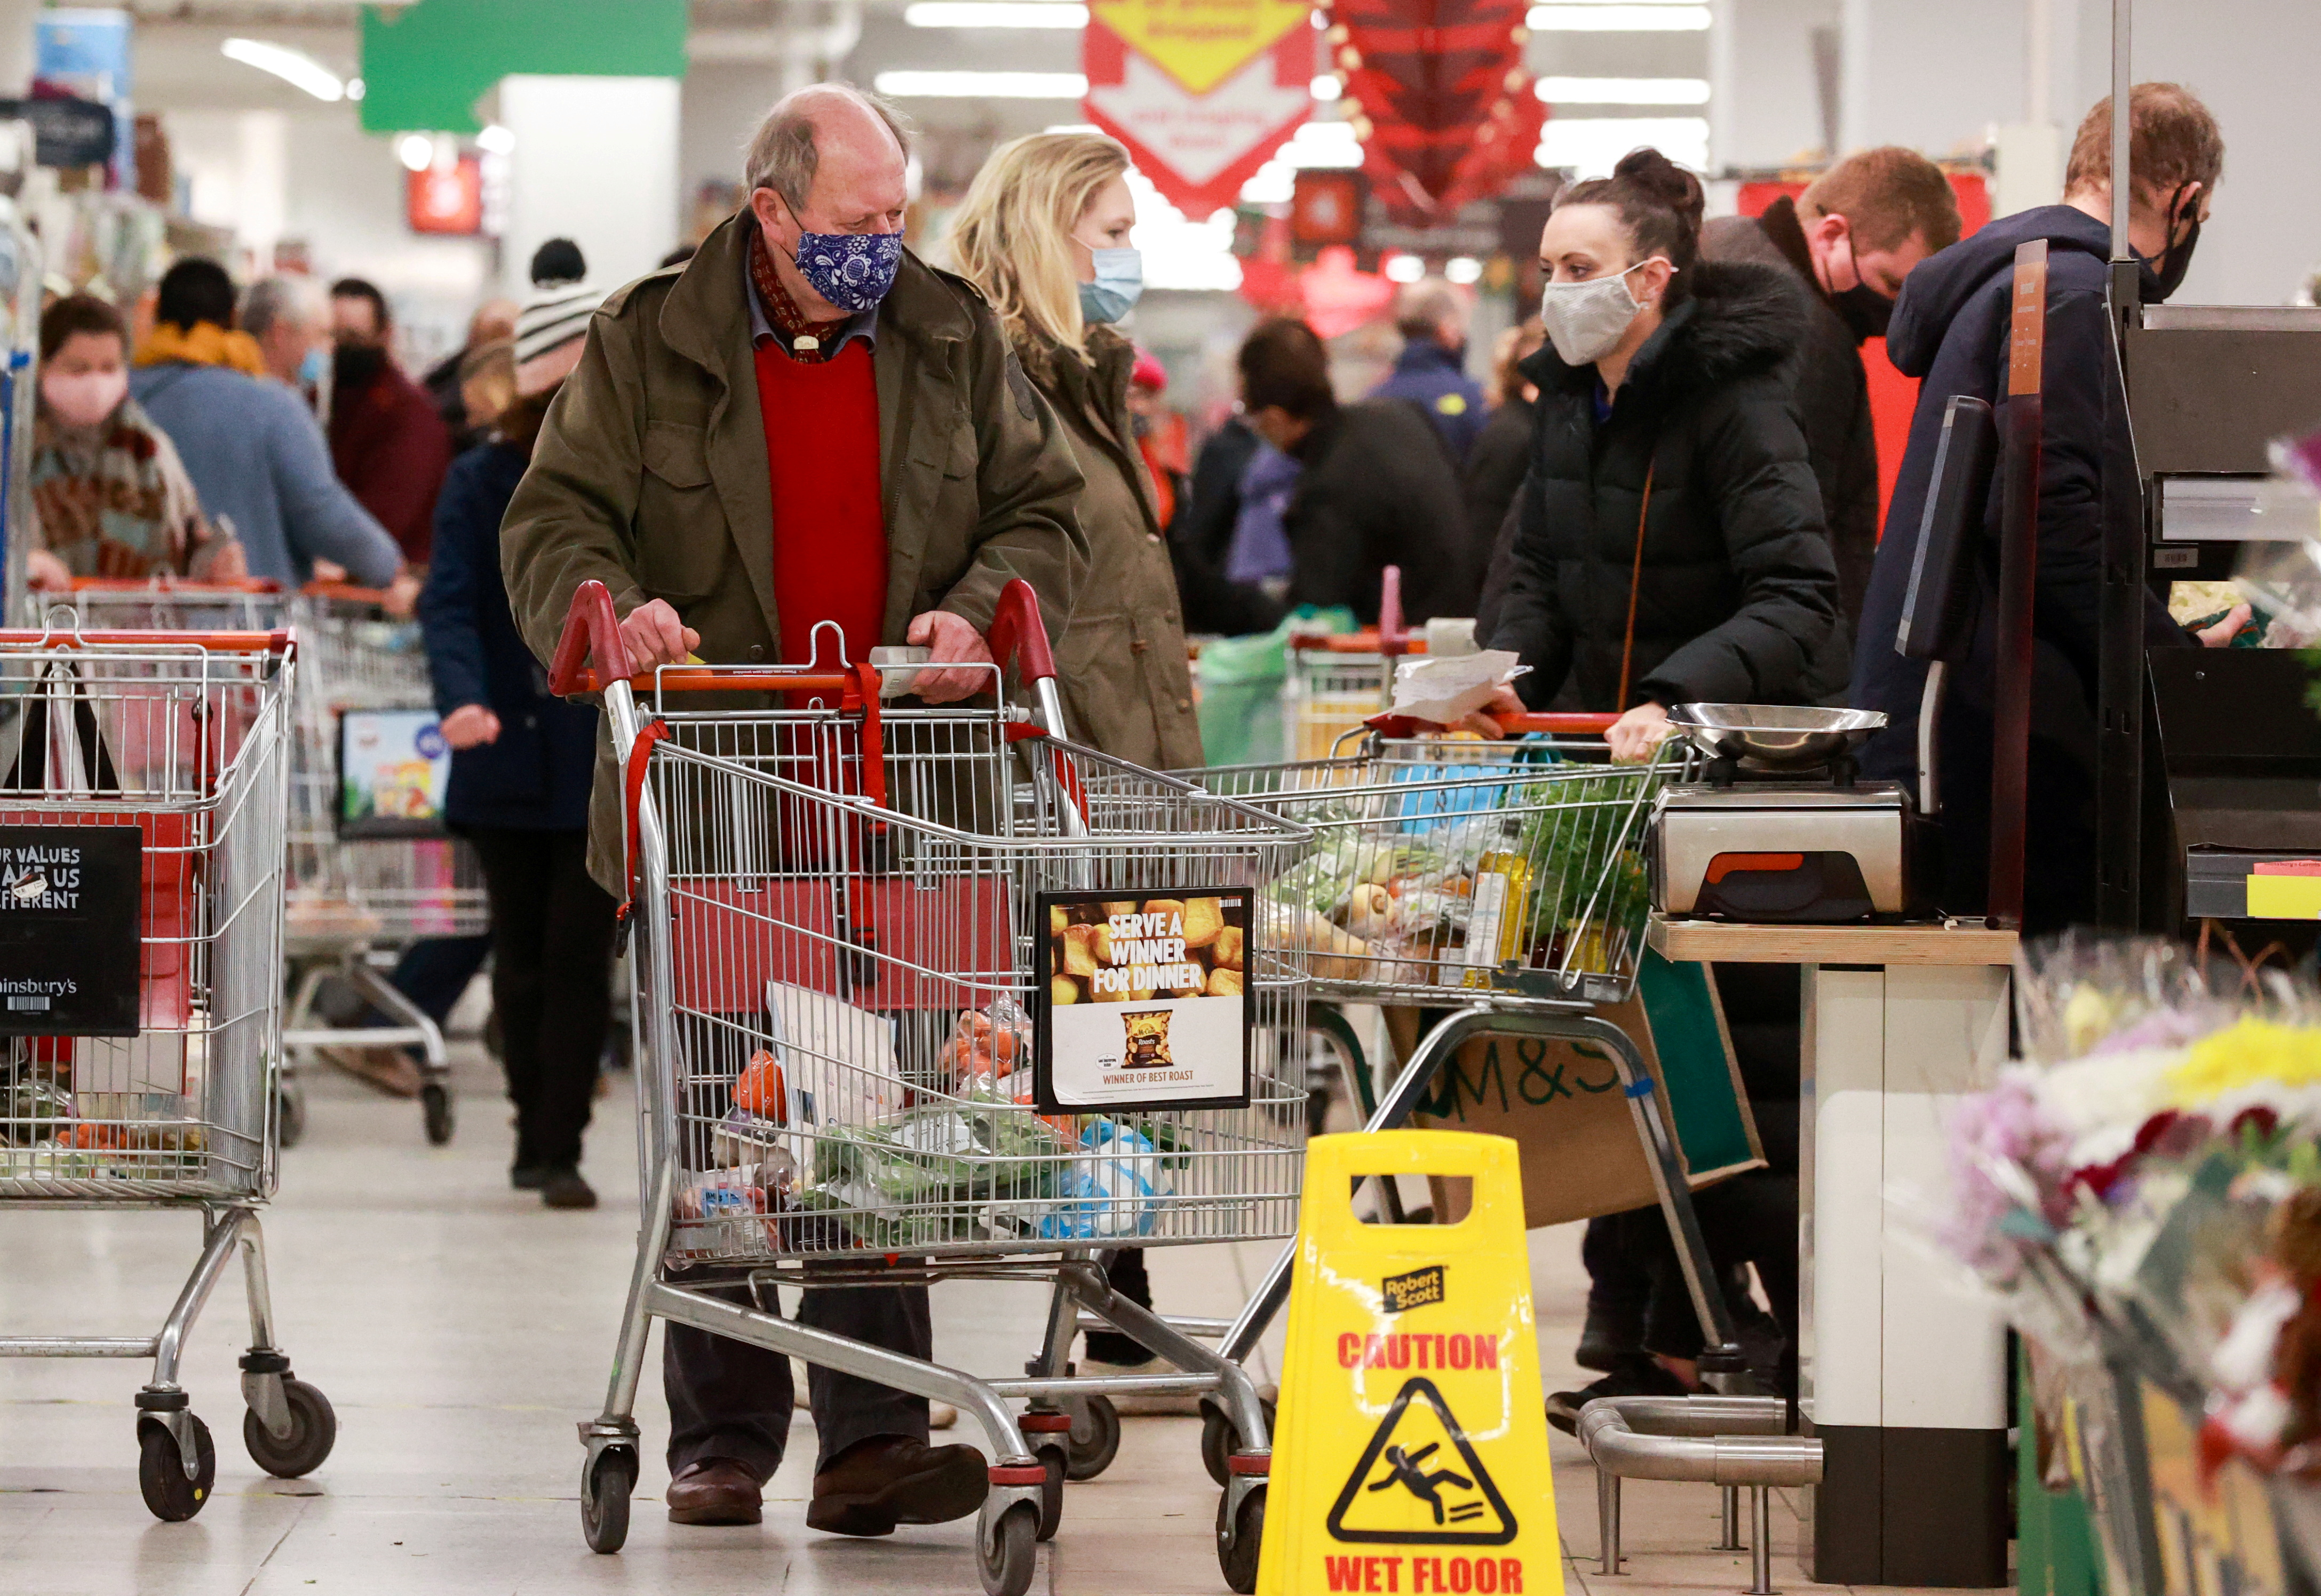 People shop at a Sainsbury's store, amid the coronavirus disease (COVID-19) outbreak, in London, Britain December 22, 2020.